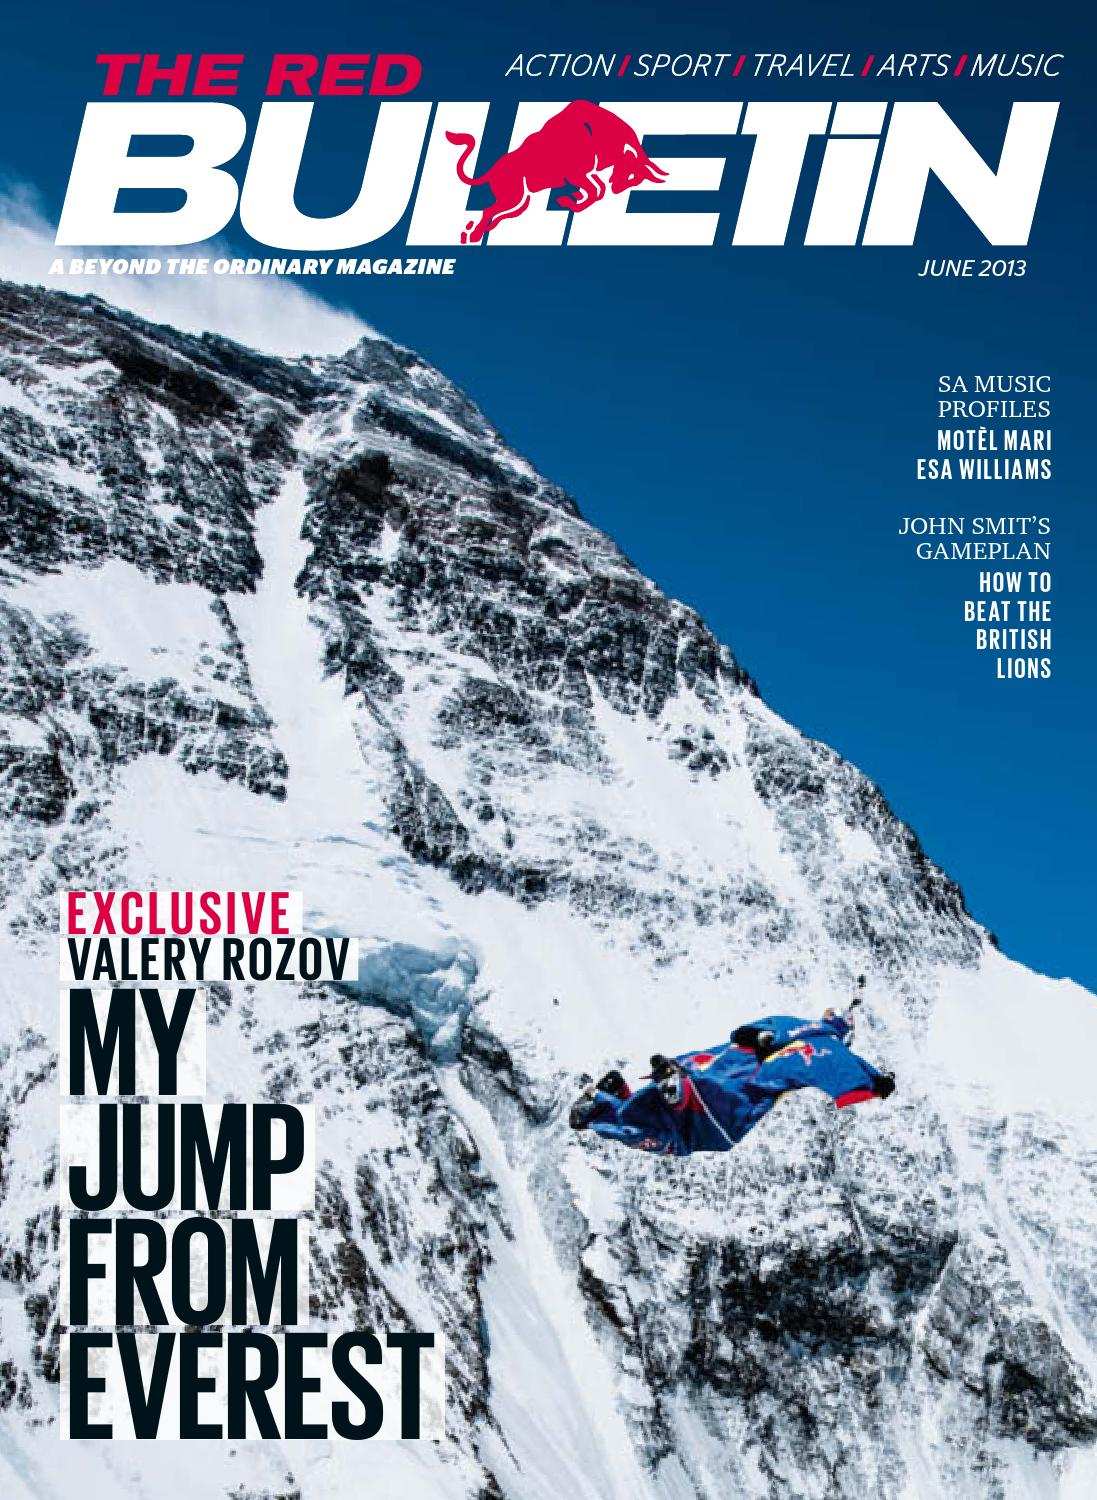 The Red Bulletin June 2013 – ZA by Red Bull Media House - issuu